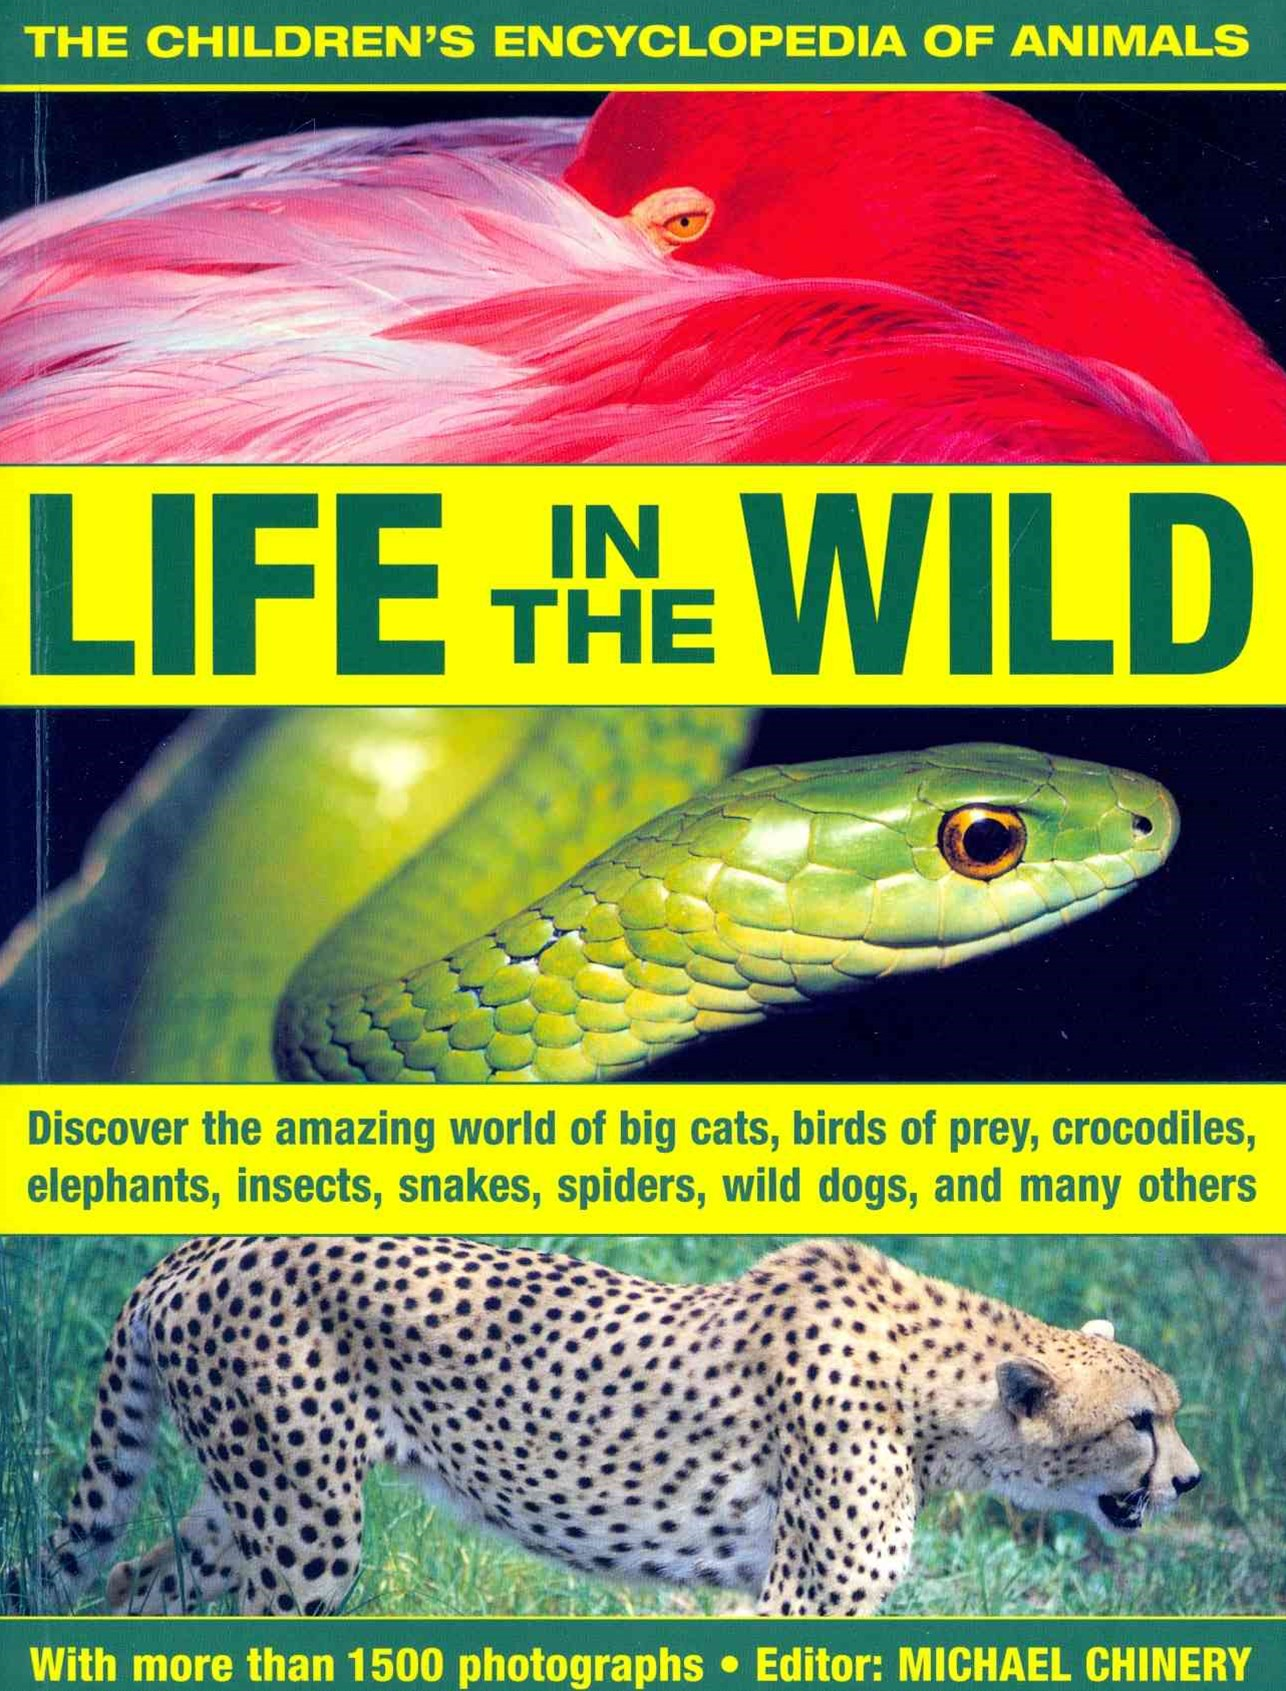 Children's Encyclopedia of Animals: Life in the Wild